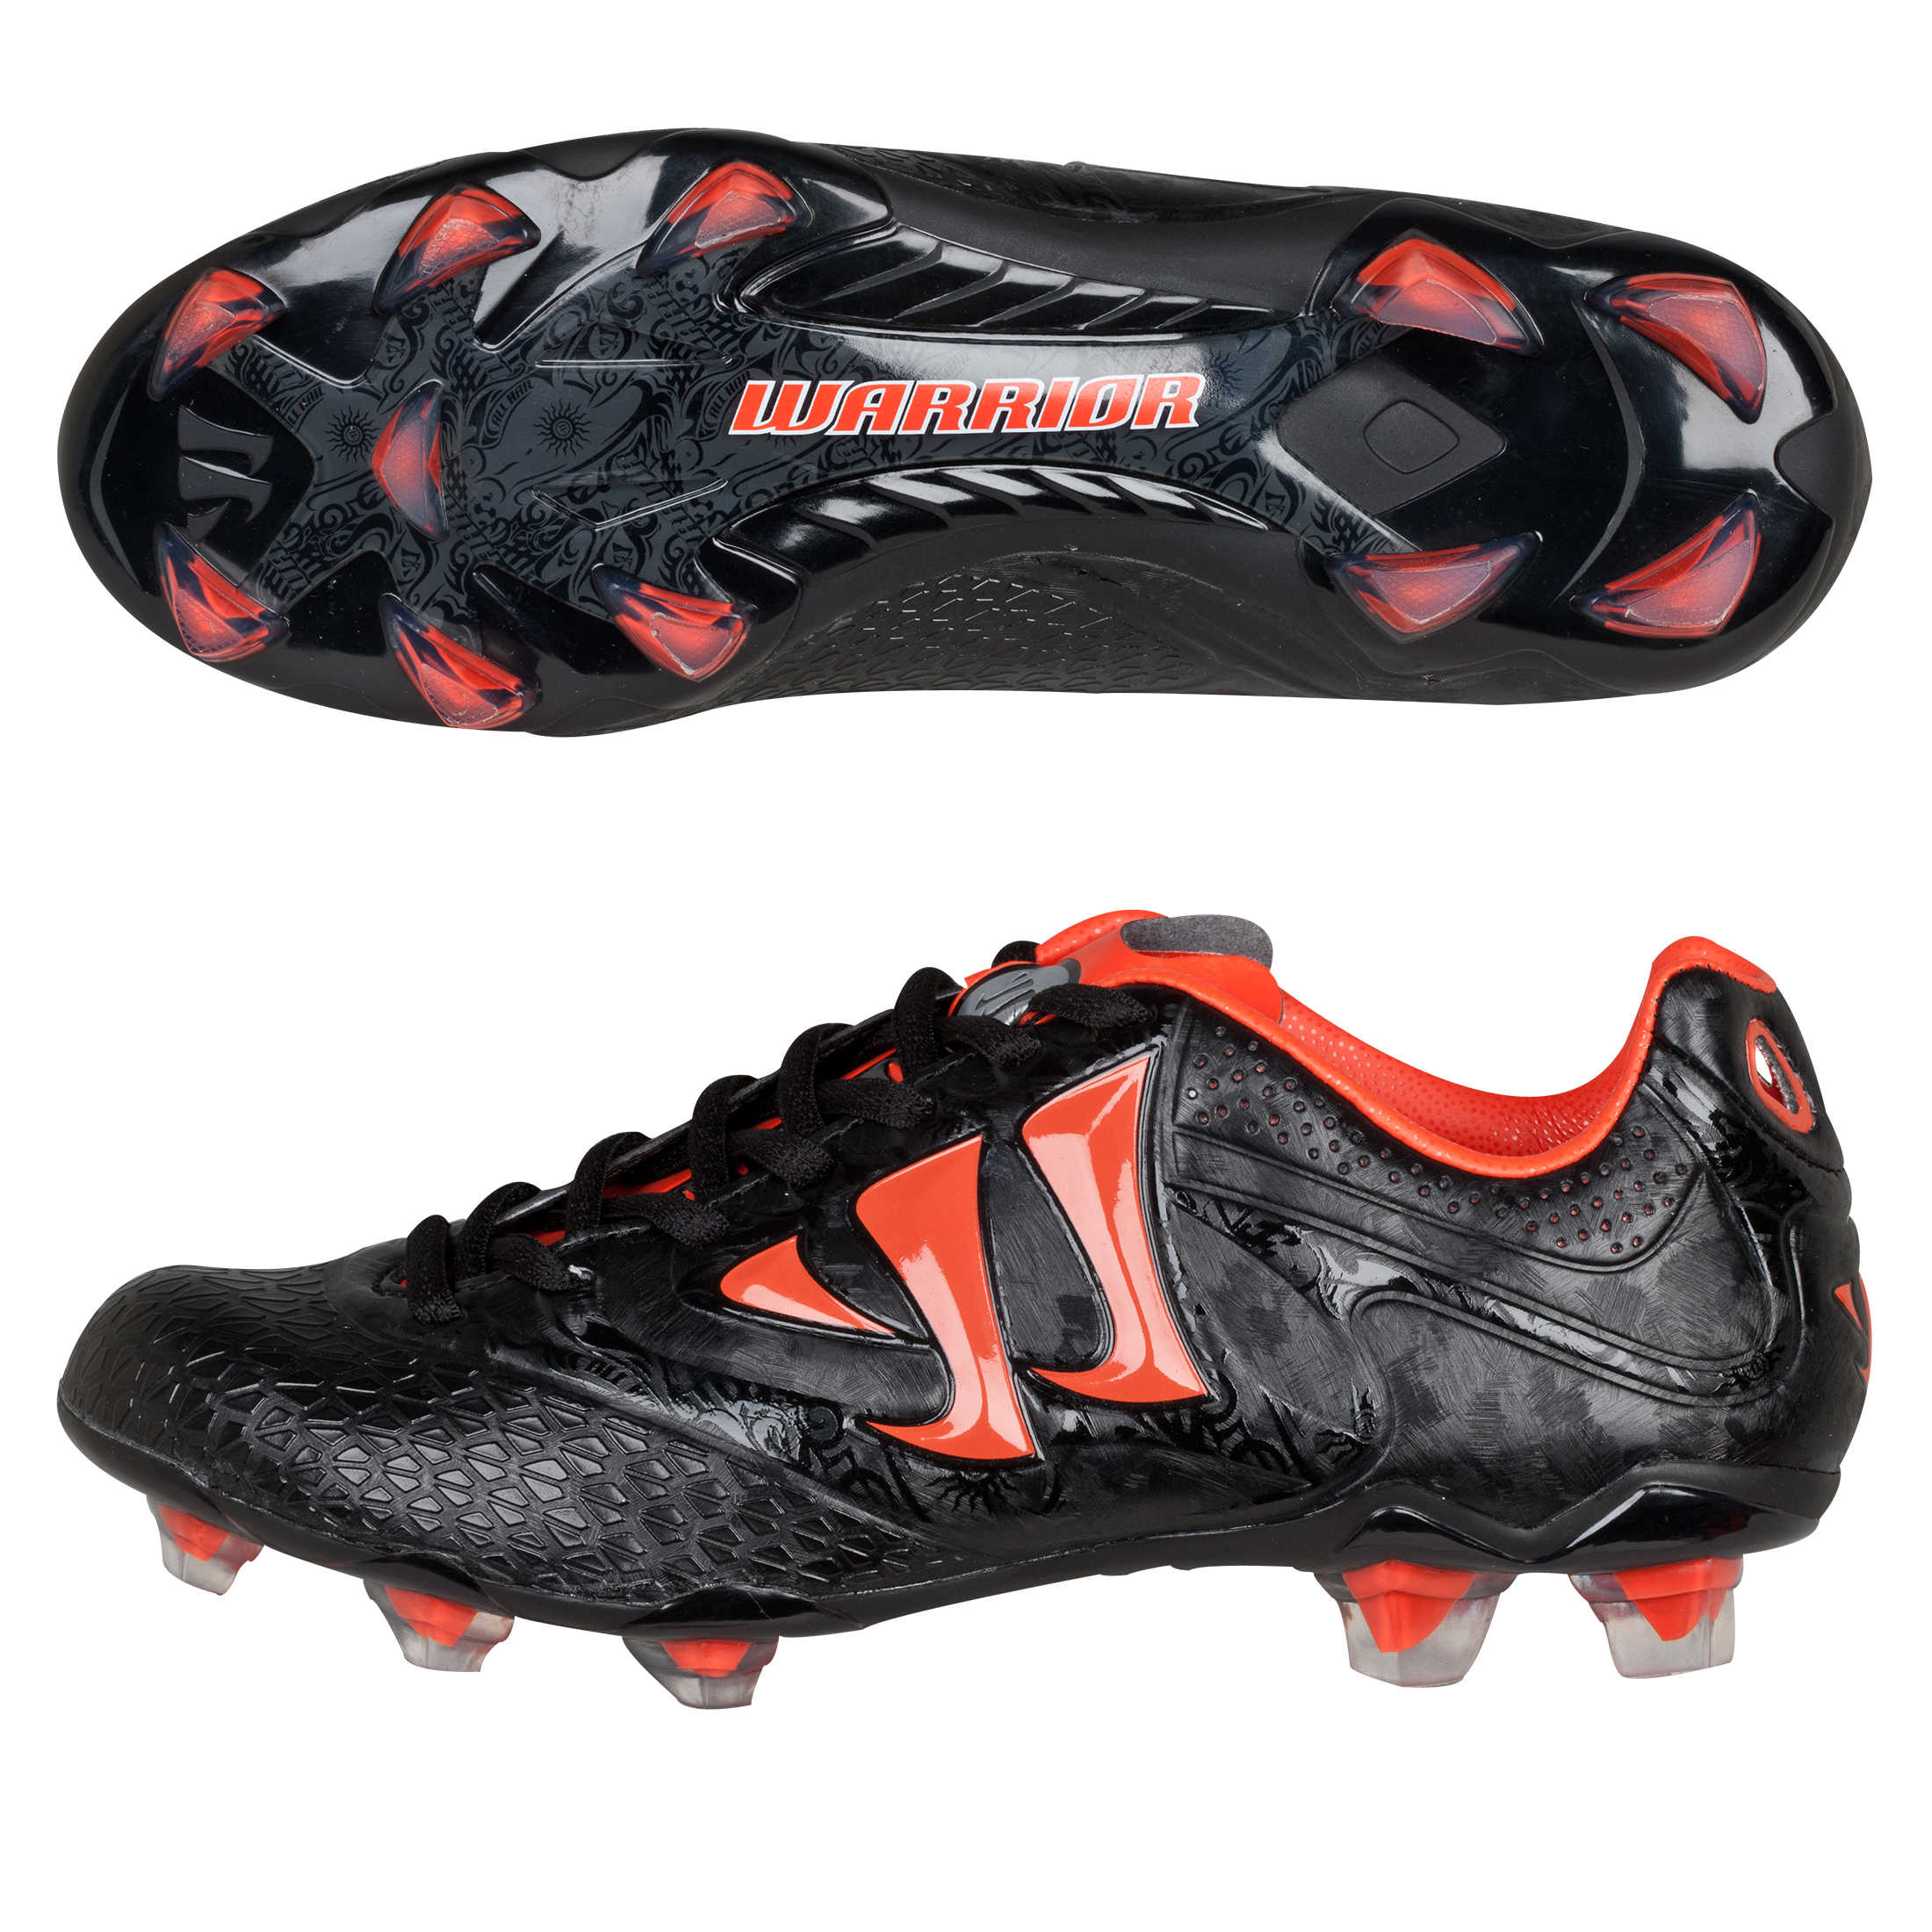 Warrior Sports Skreamer Combat Firm Ground Football Boots - Black/Spicy Orange - Kids